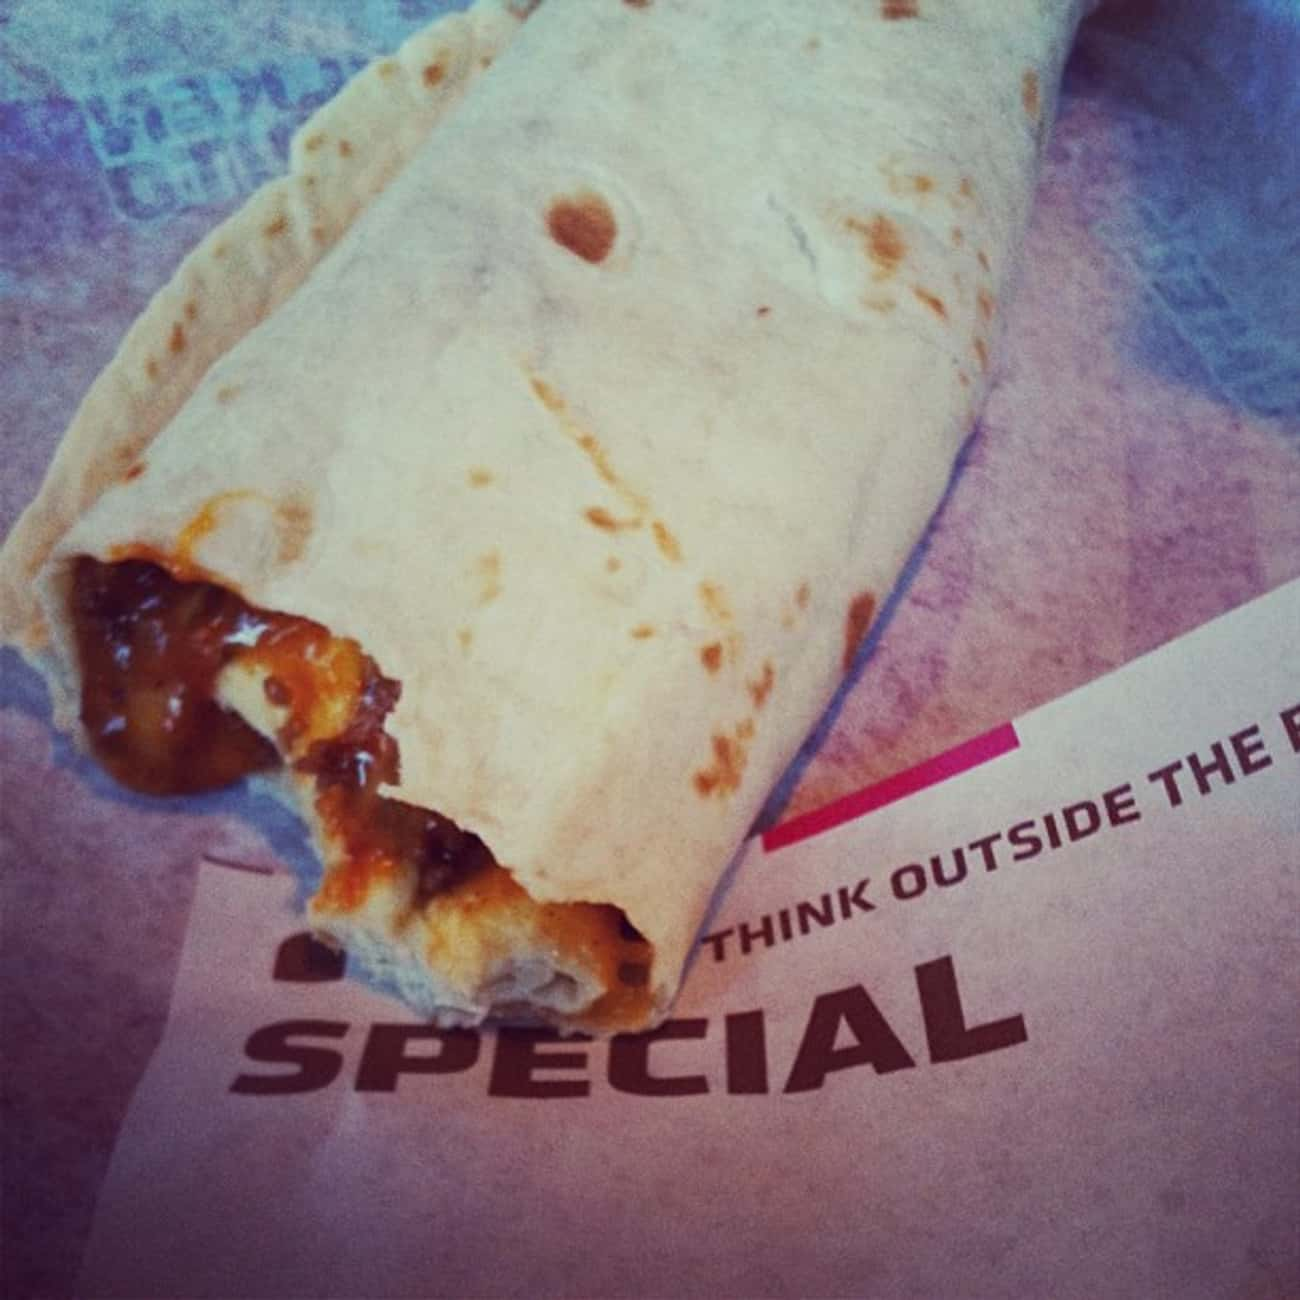 Chili Cheese Burrito is listed (or ranked) 4 on the list Taco Bell Secret Menu Items